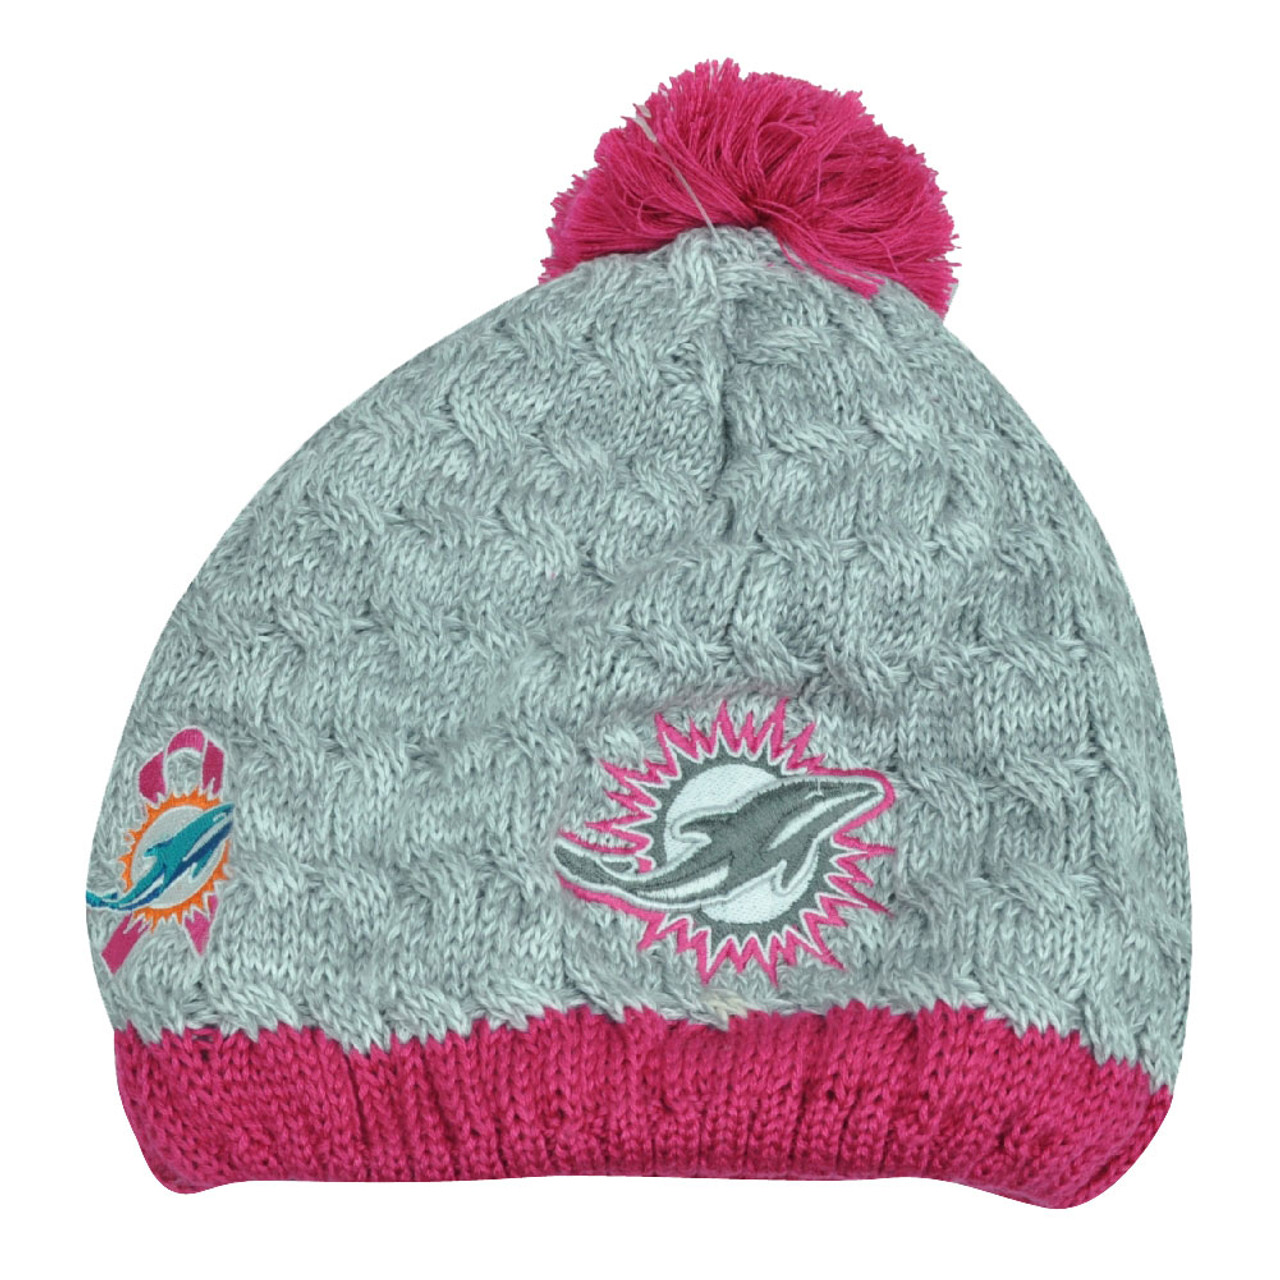 promo code 0fa02 46bc8 NFL New Era Breast Cancer Awareness Knit Beanie Miami Dolphins Pink Womens  Toque